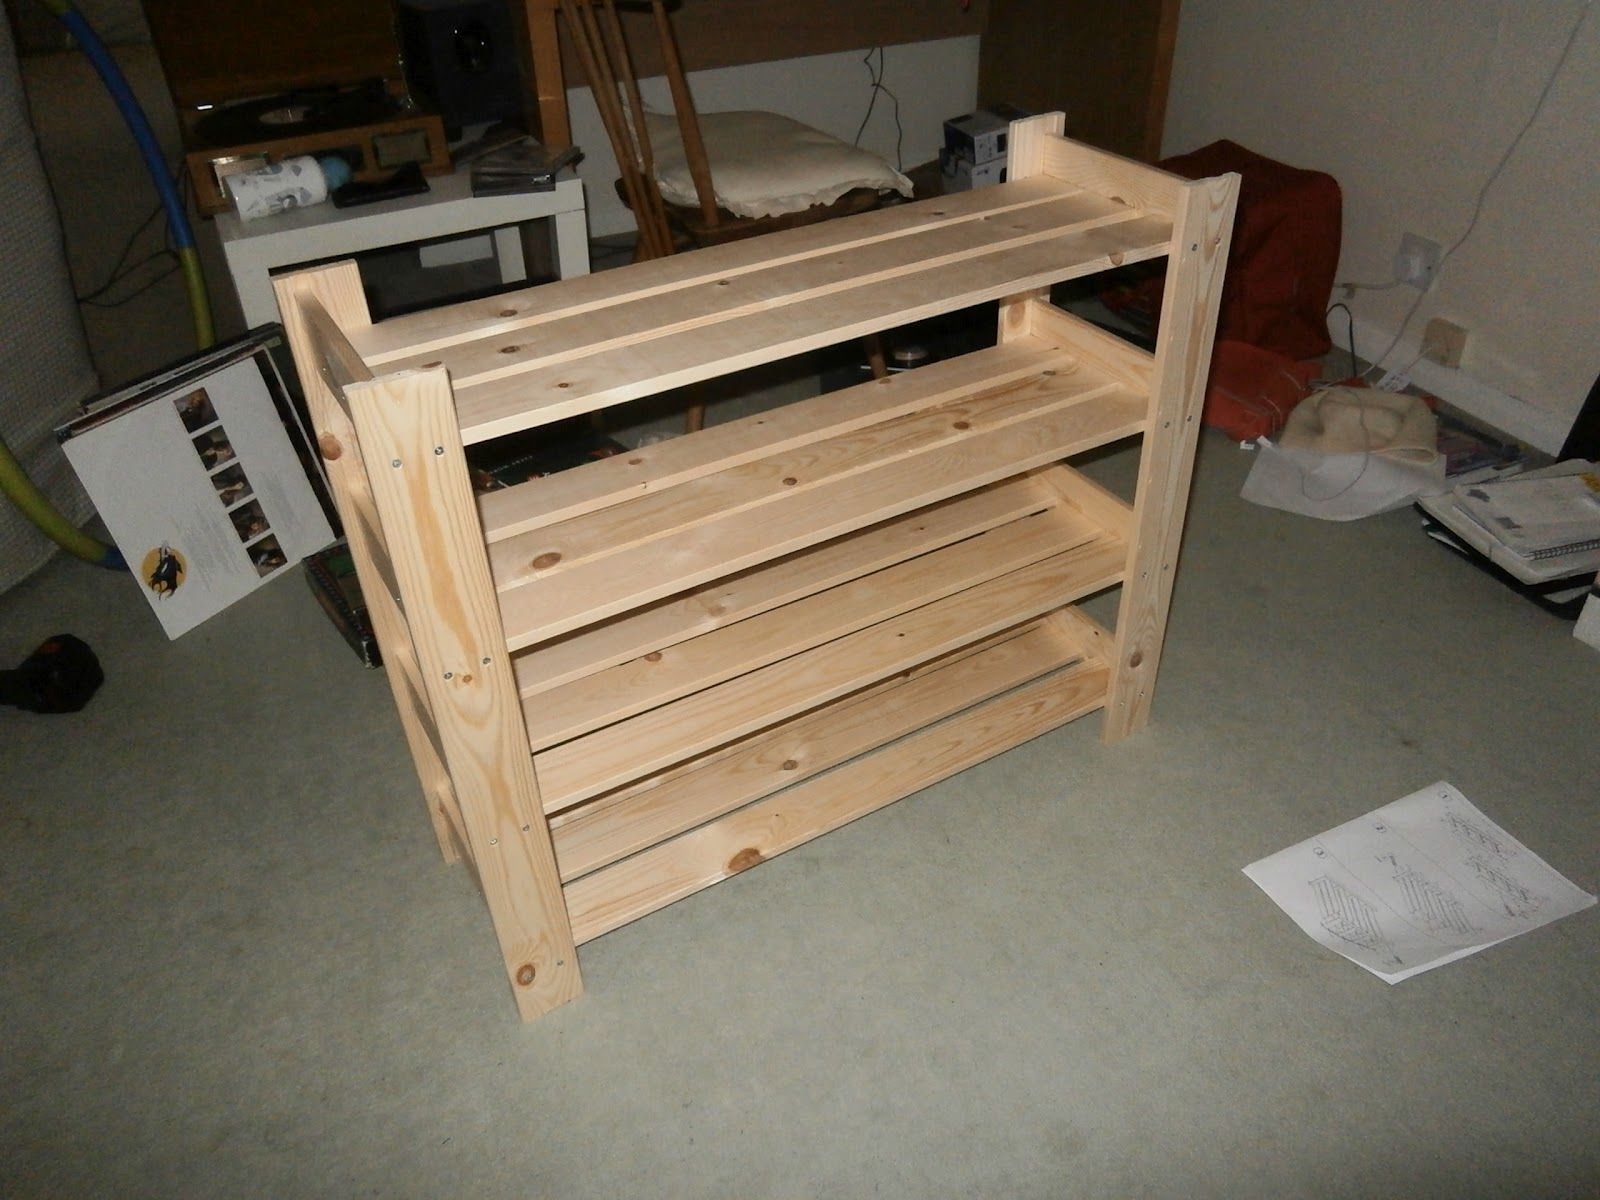 How To Make A Shoe Rack Wood Shoe Cabinet Plans Front Porch Pinterest Shoe Rack